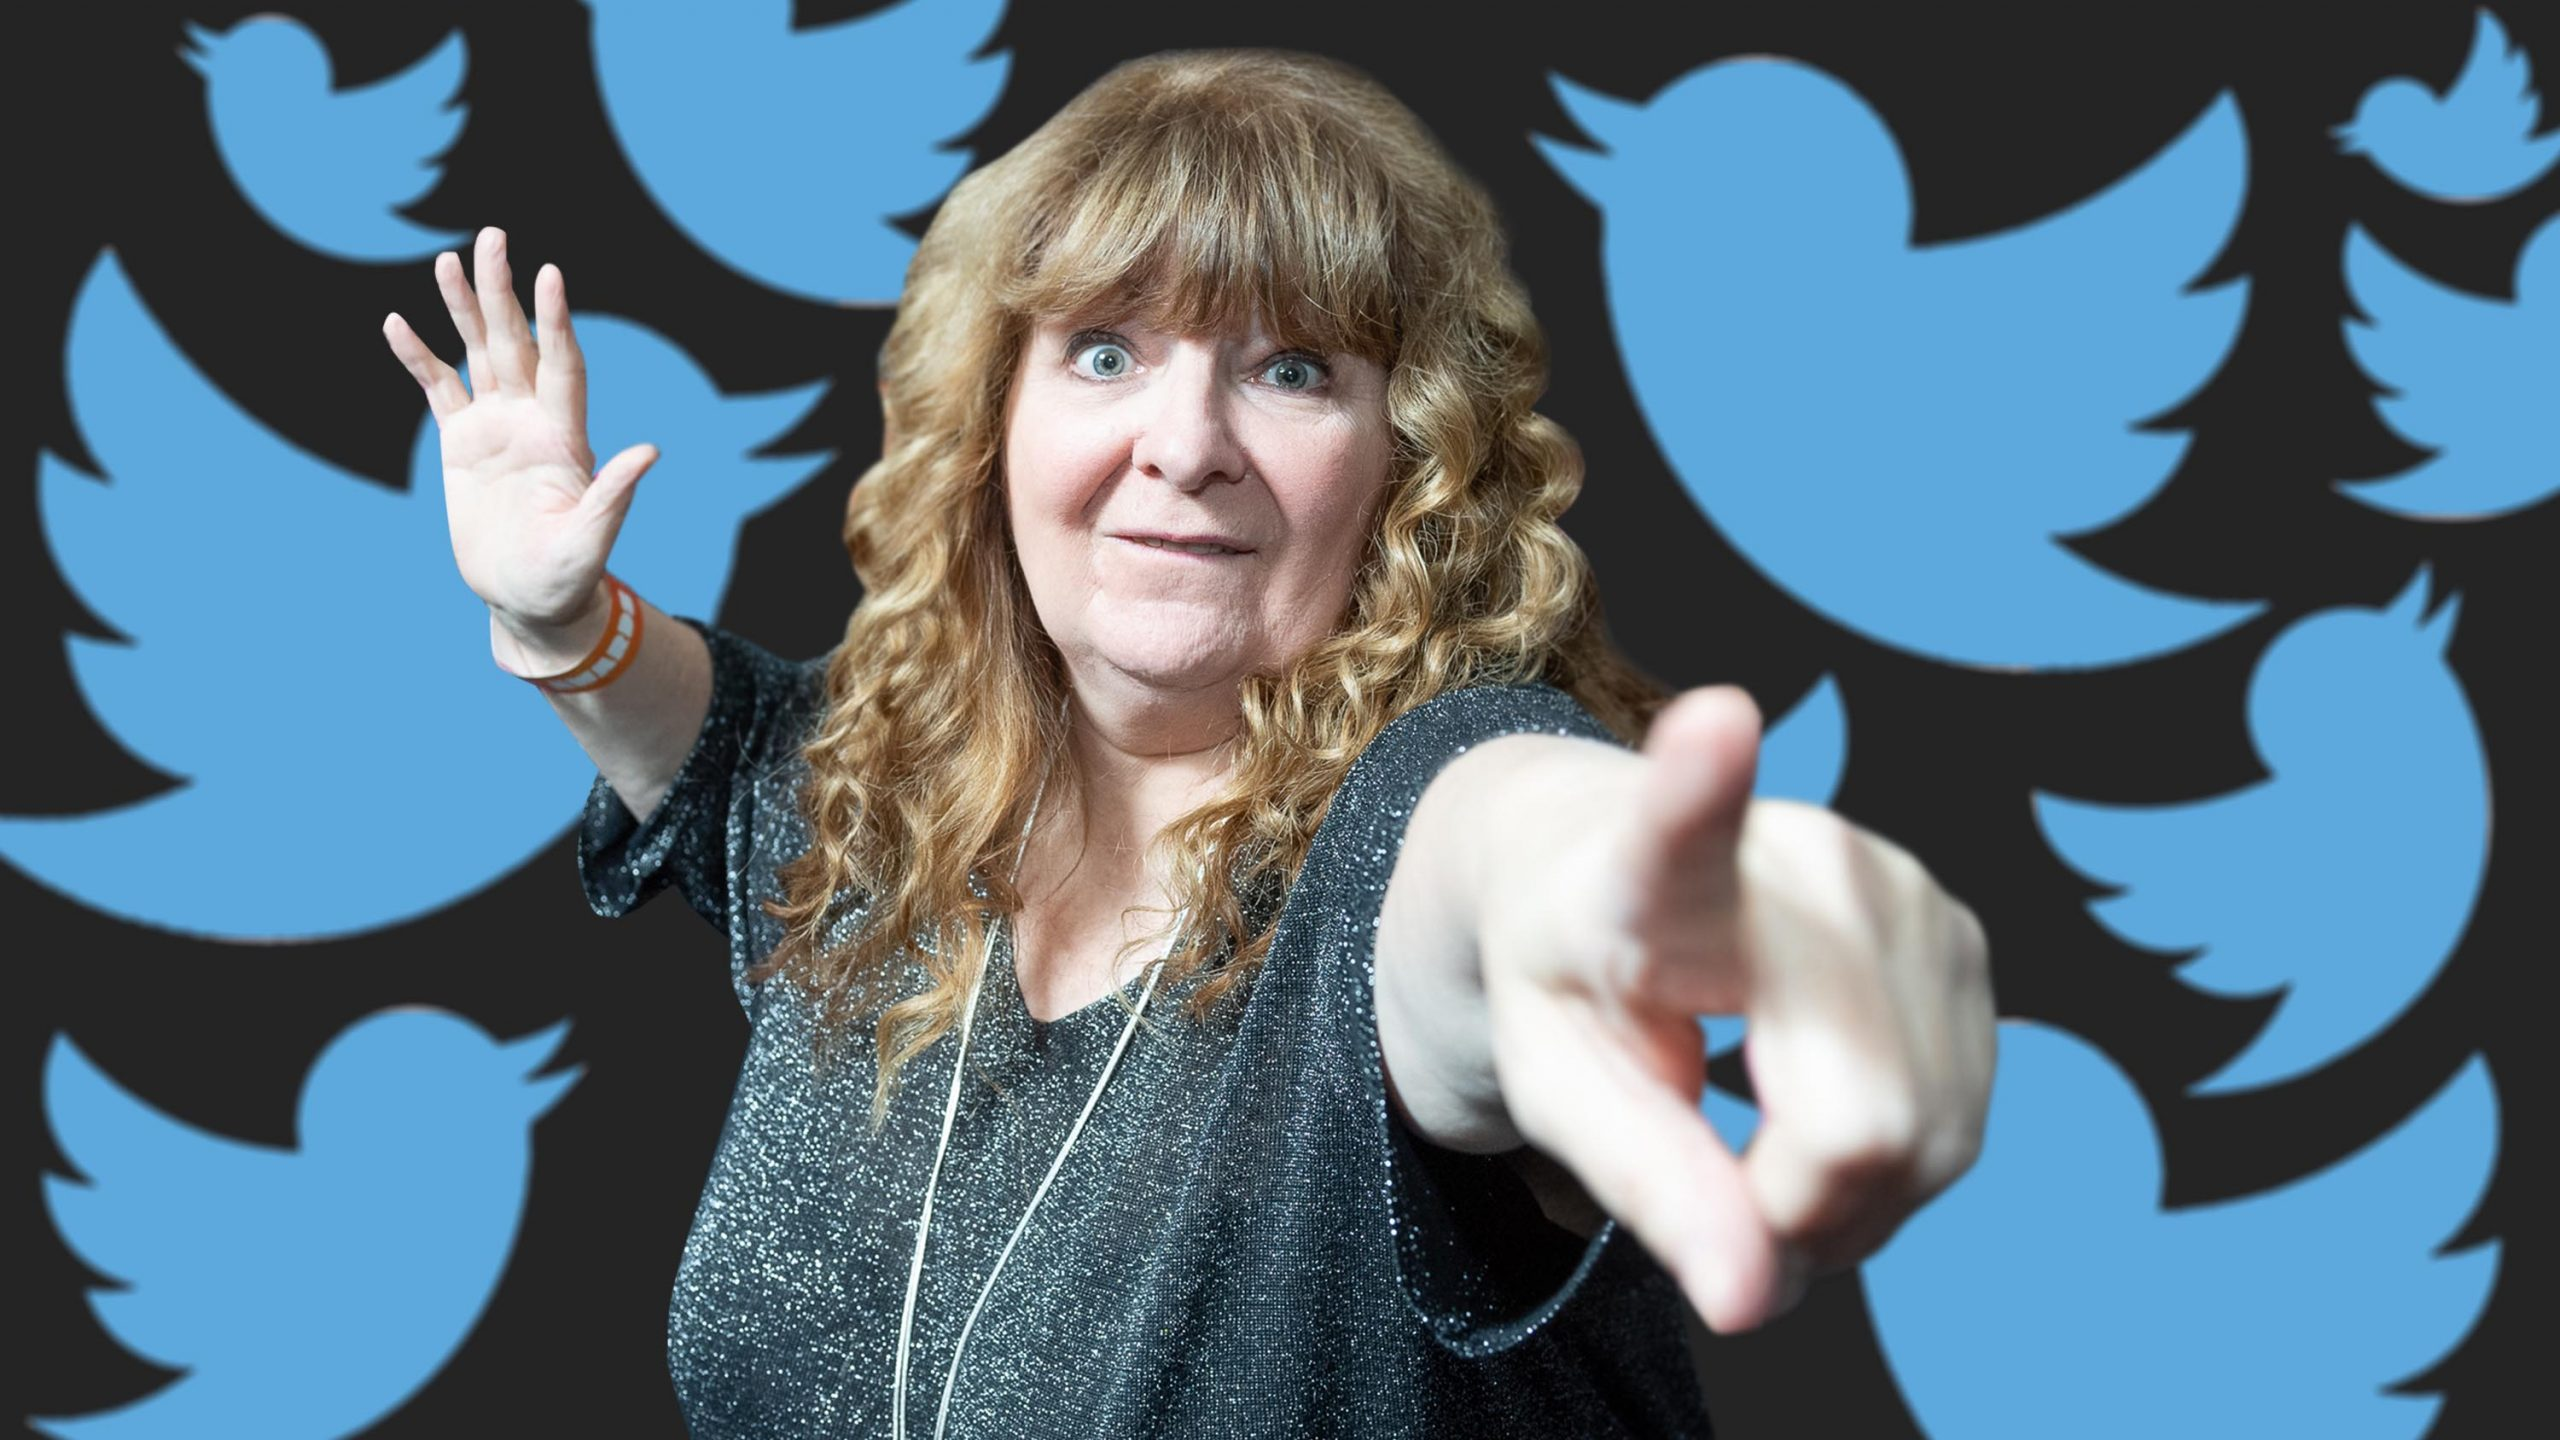 Bigot Feminist & Failed Comedian Jane Godley Exposed & Blasted Online For Causing Outrage Because She Mocked Disabled People And Spewed Sectarian Hatred